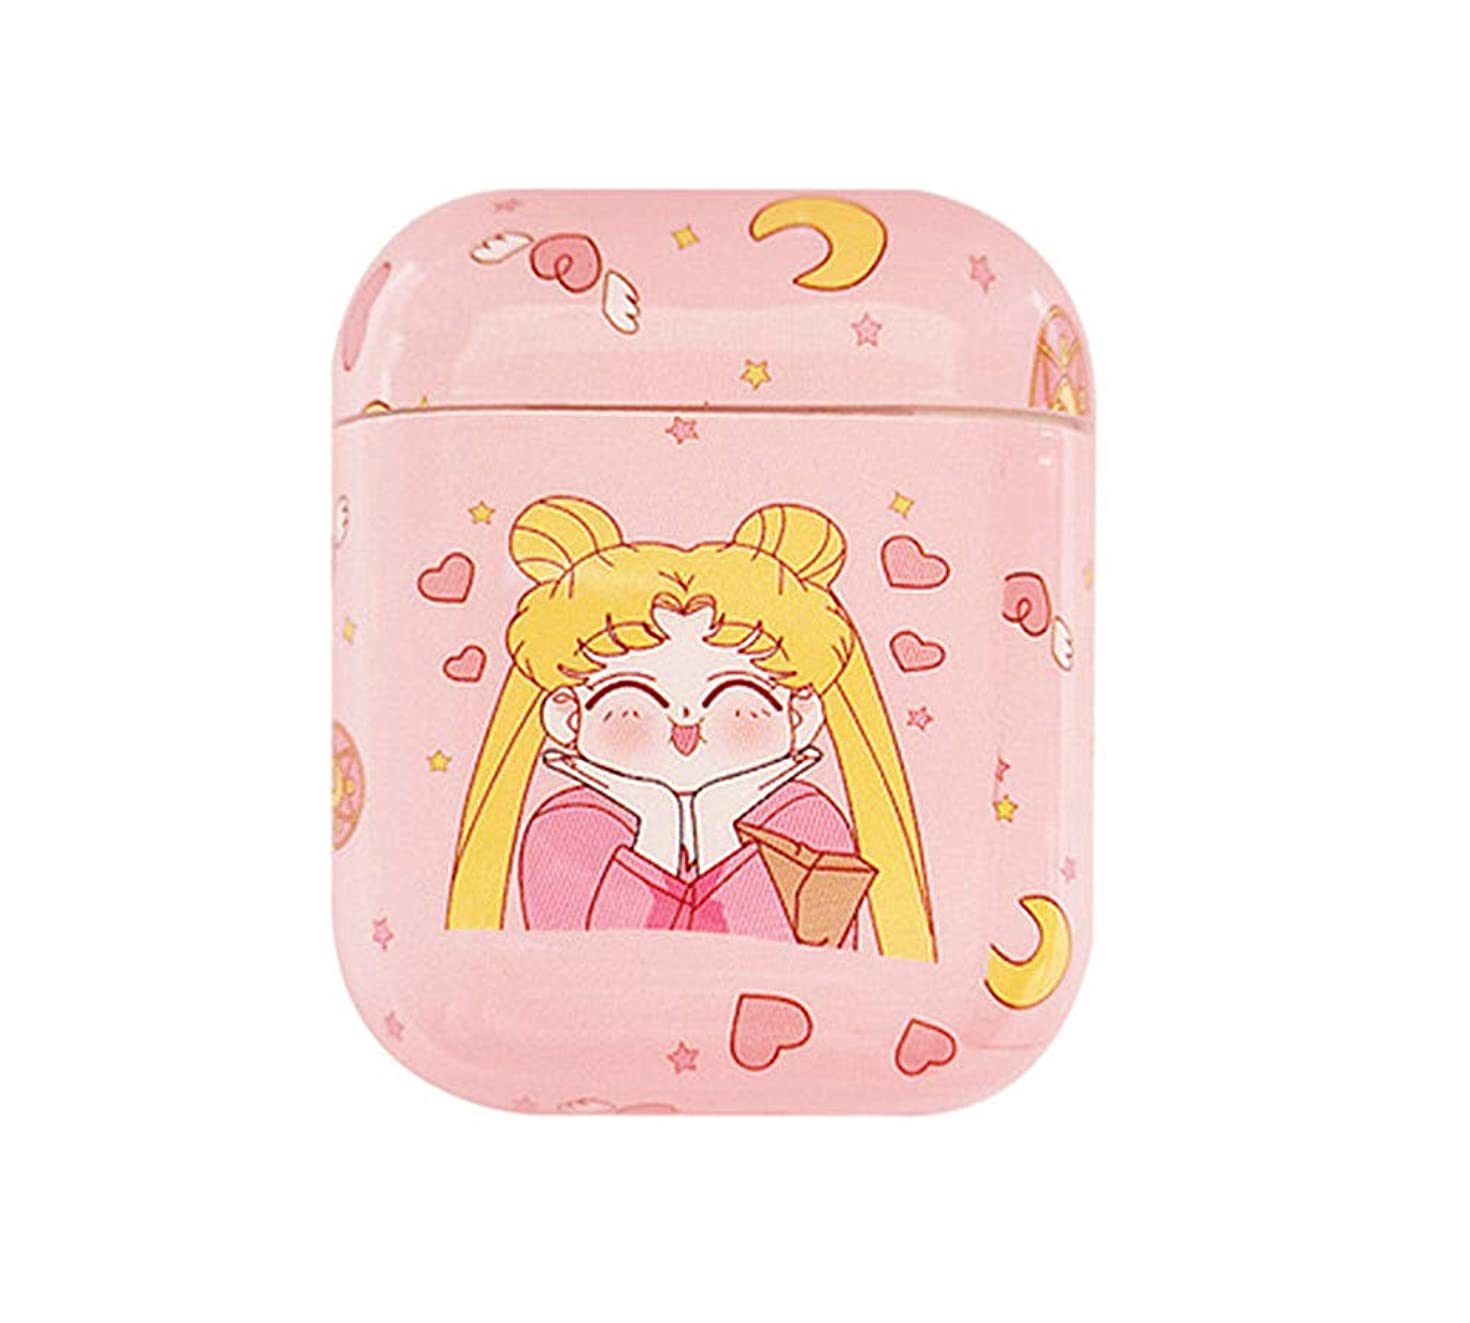 Cartoon Case for Apple Airpods 1 & 2 Charging Case, Cute Japan Anime Sailor Moon Hard Protective Case for Airpod Cover for Kids Teens Girls (Smile)